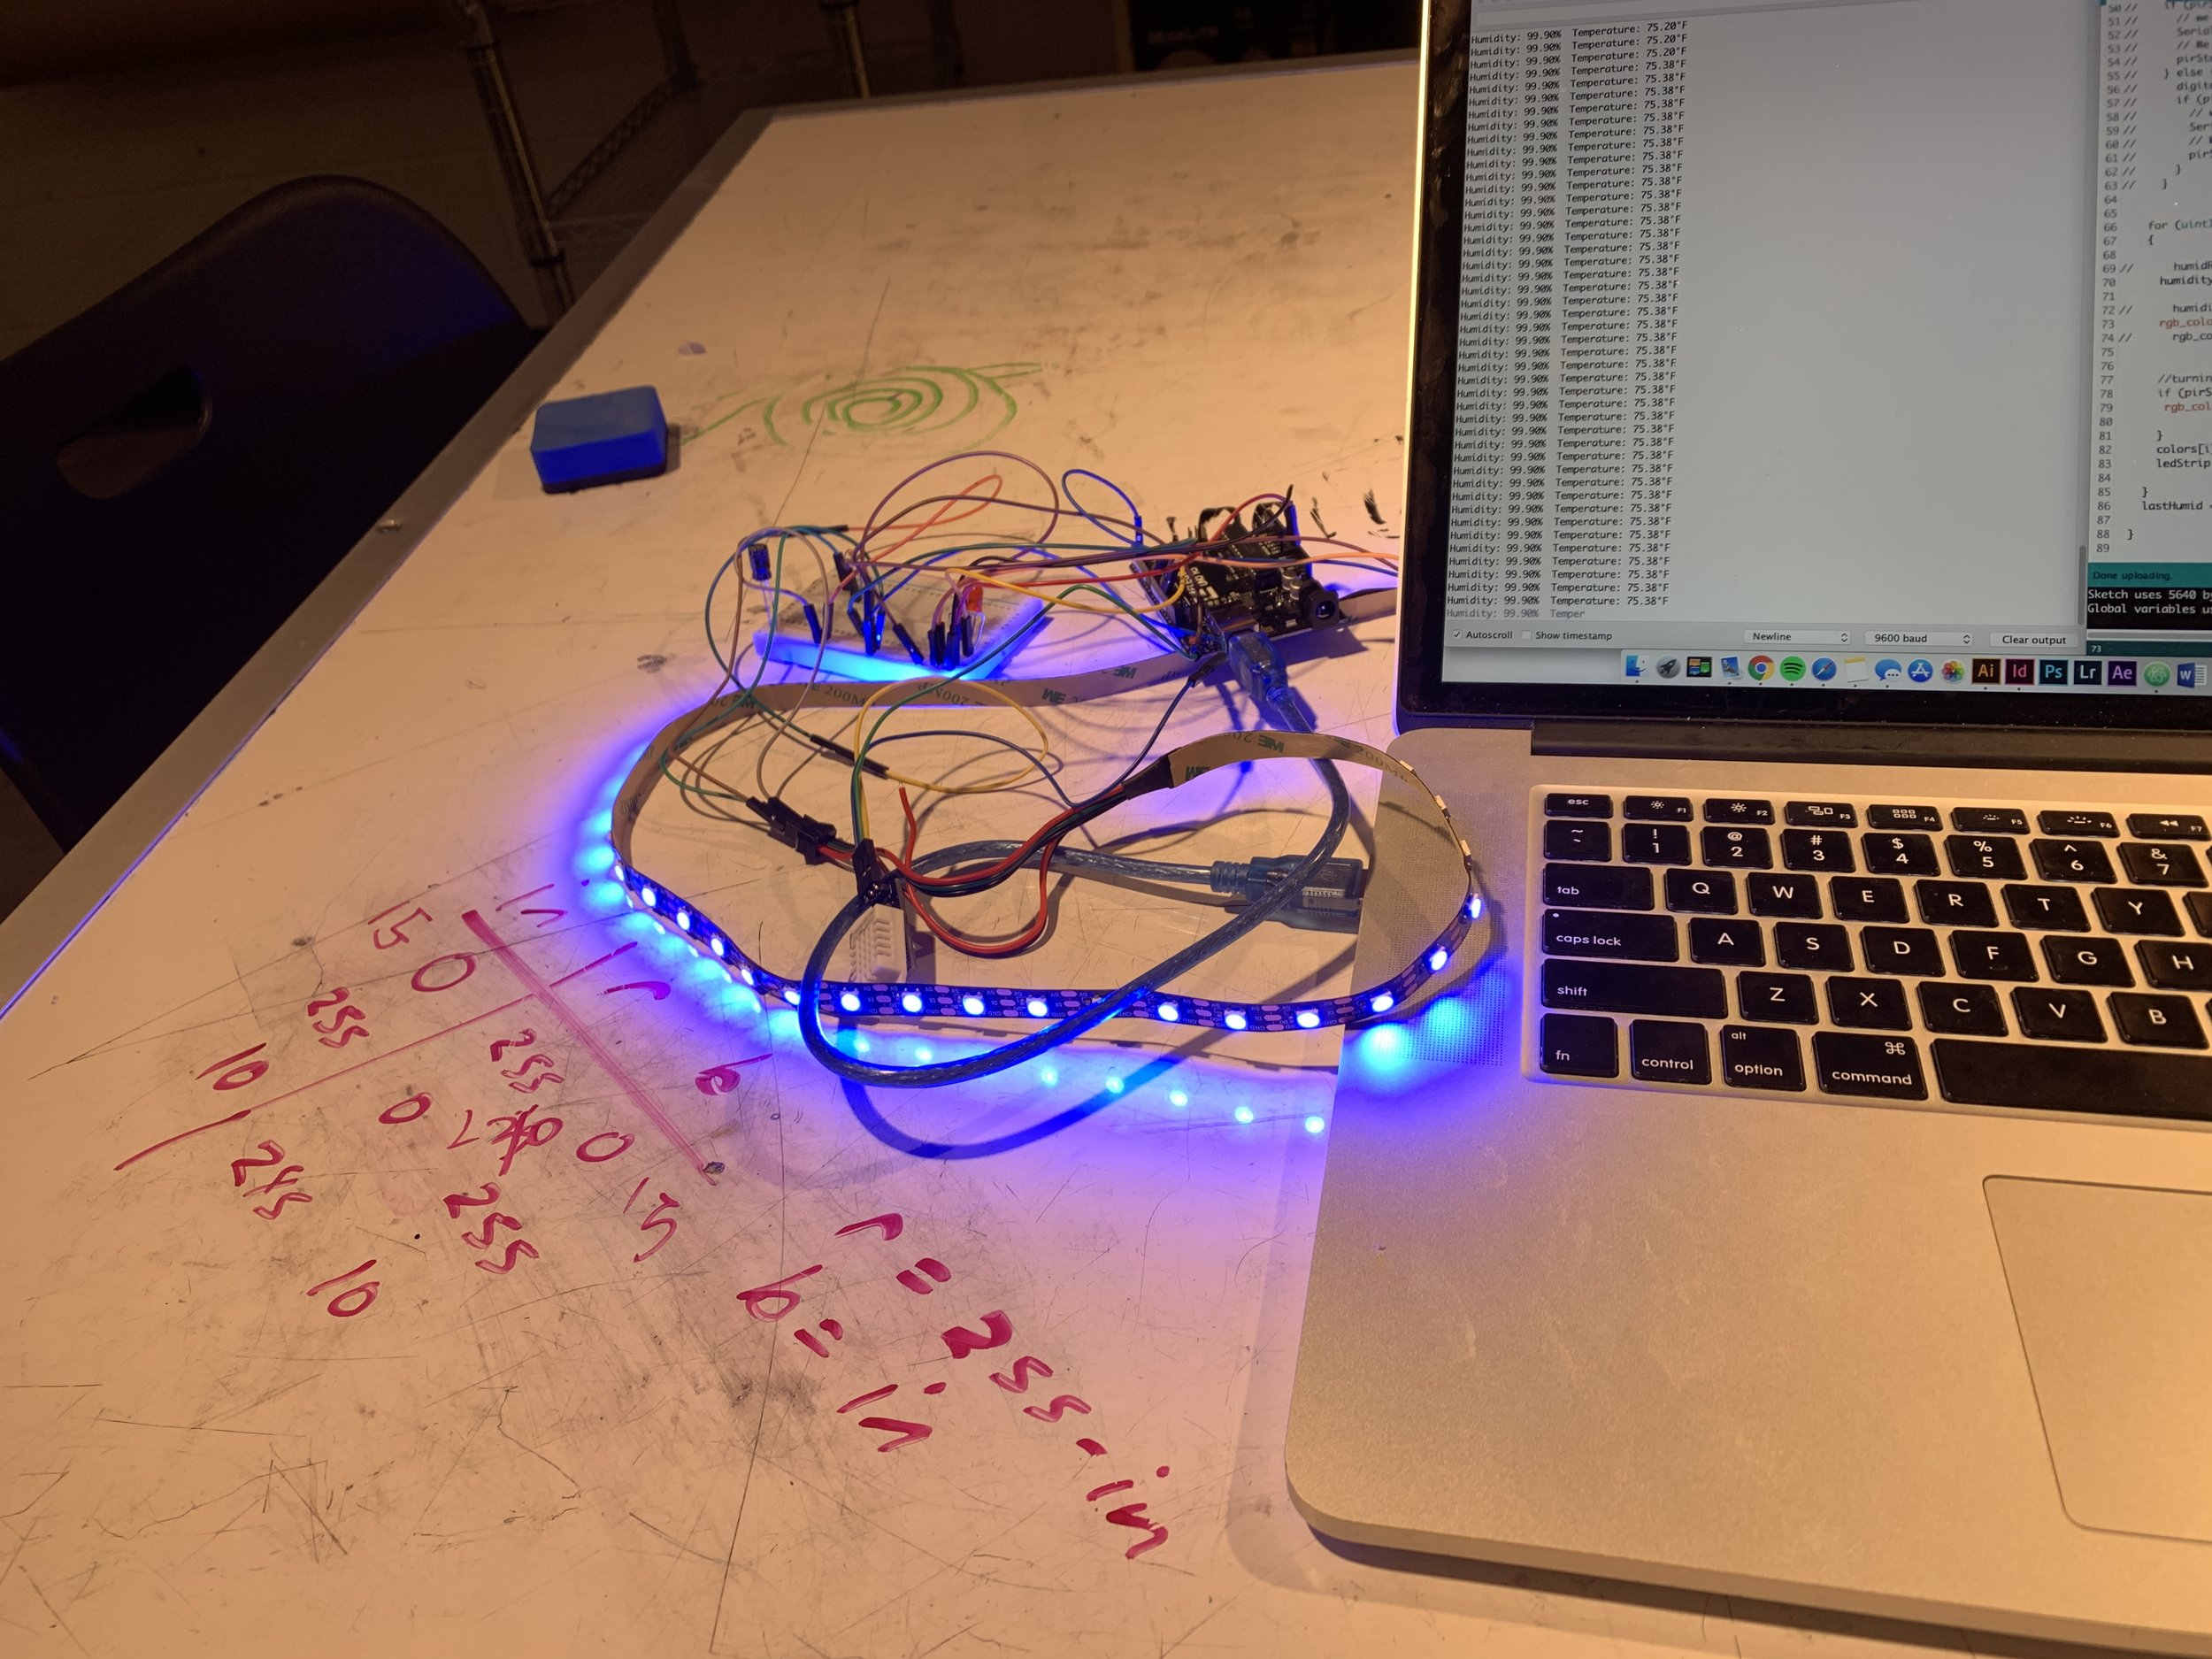 Coding the humidity levels to affect the color of the LED's